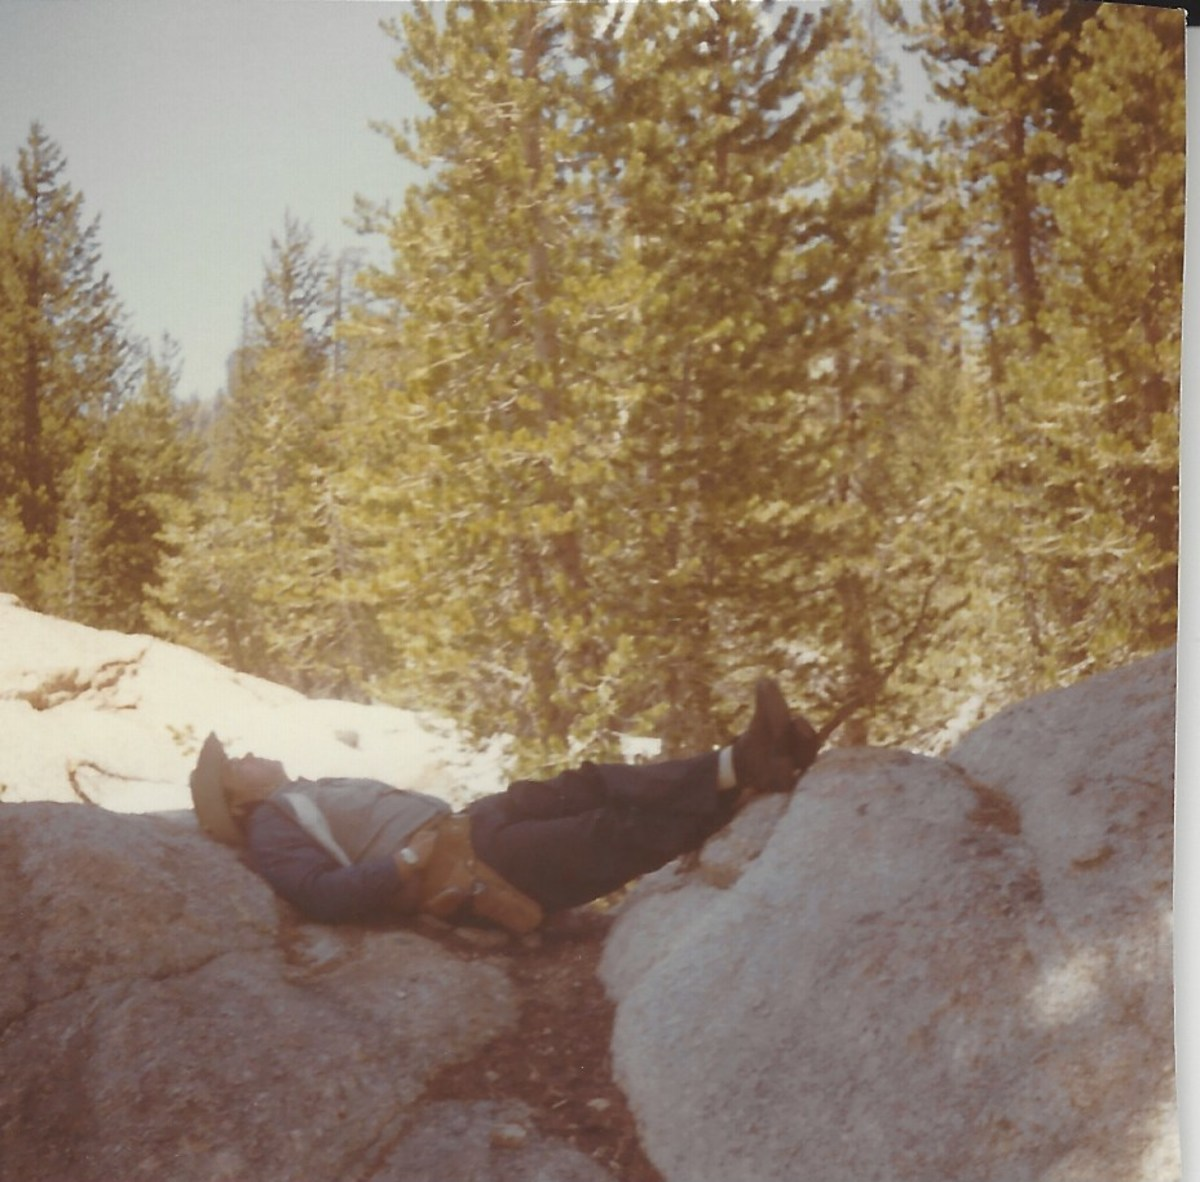 Dad relaxing on one of his hunting trips